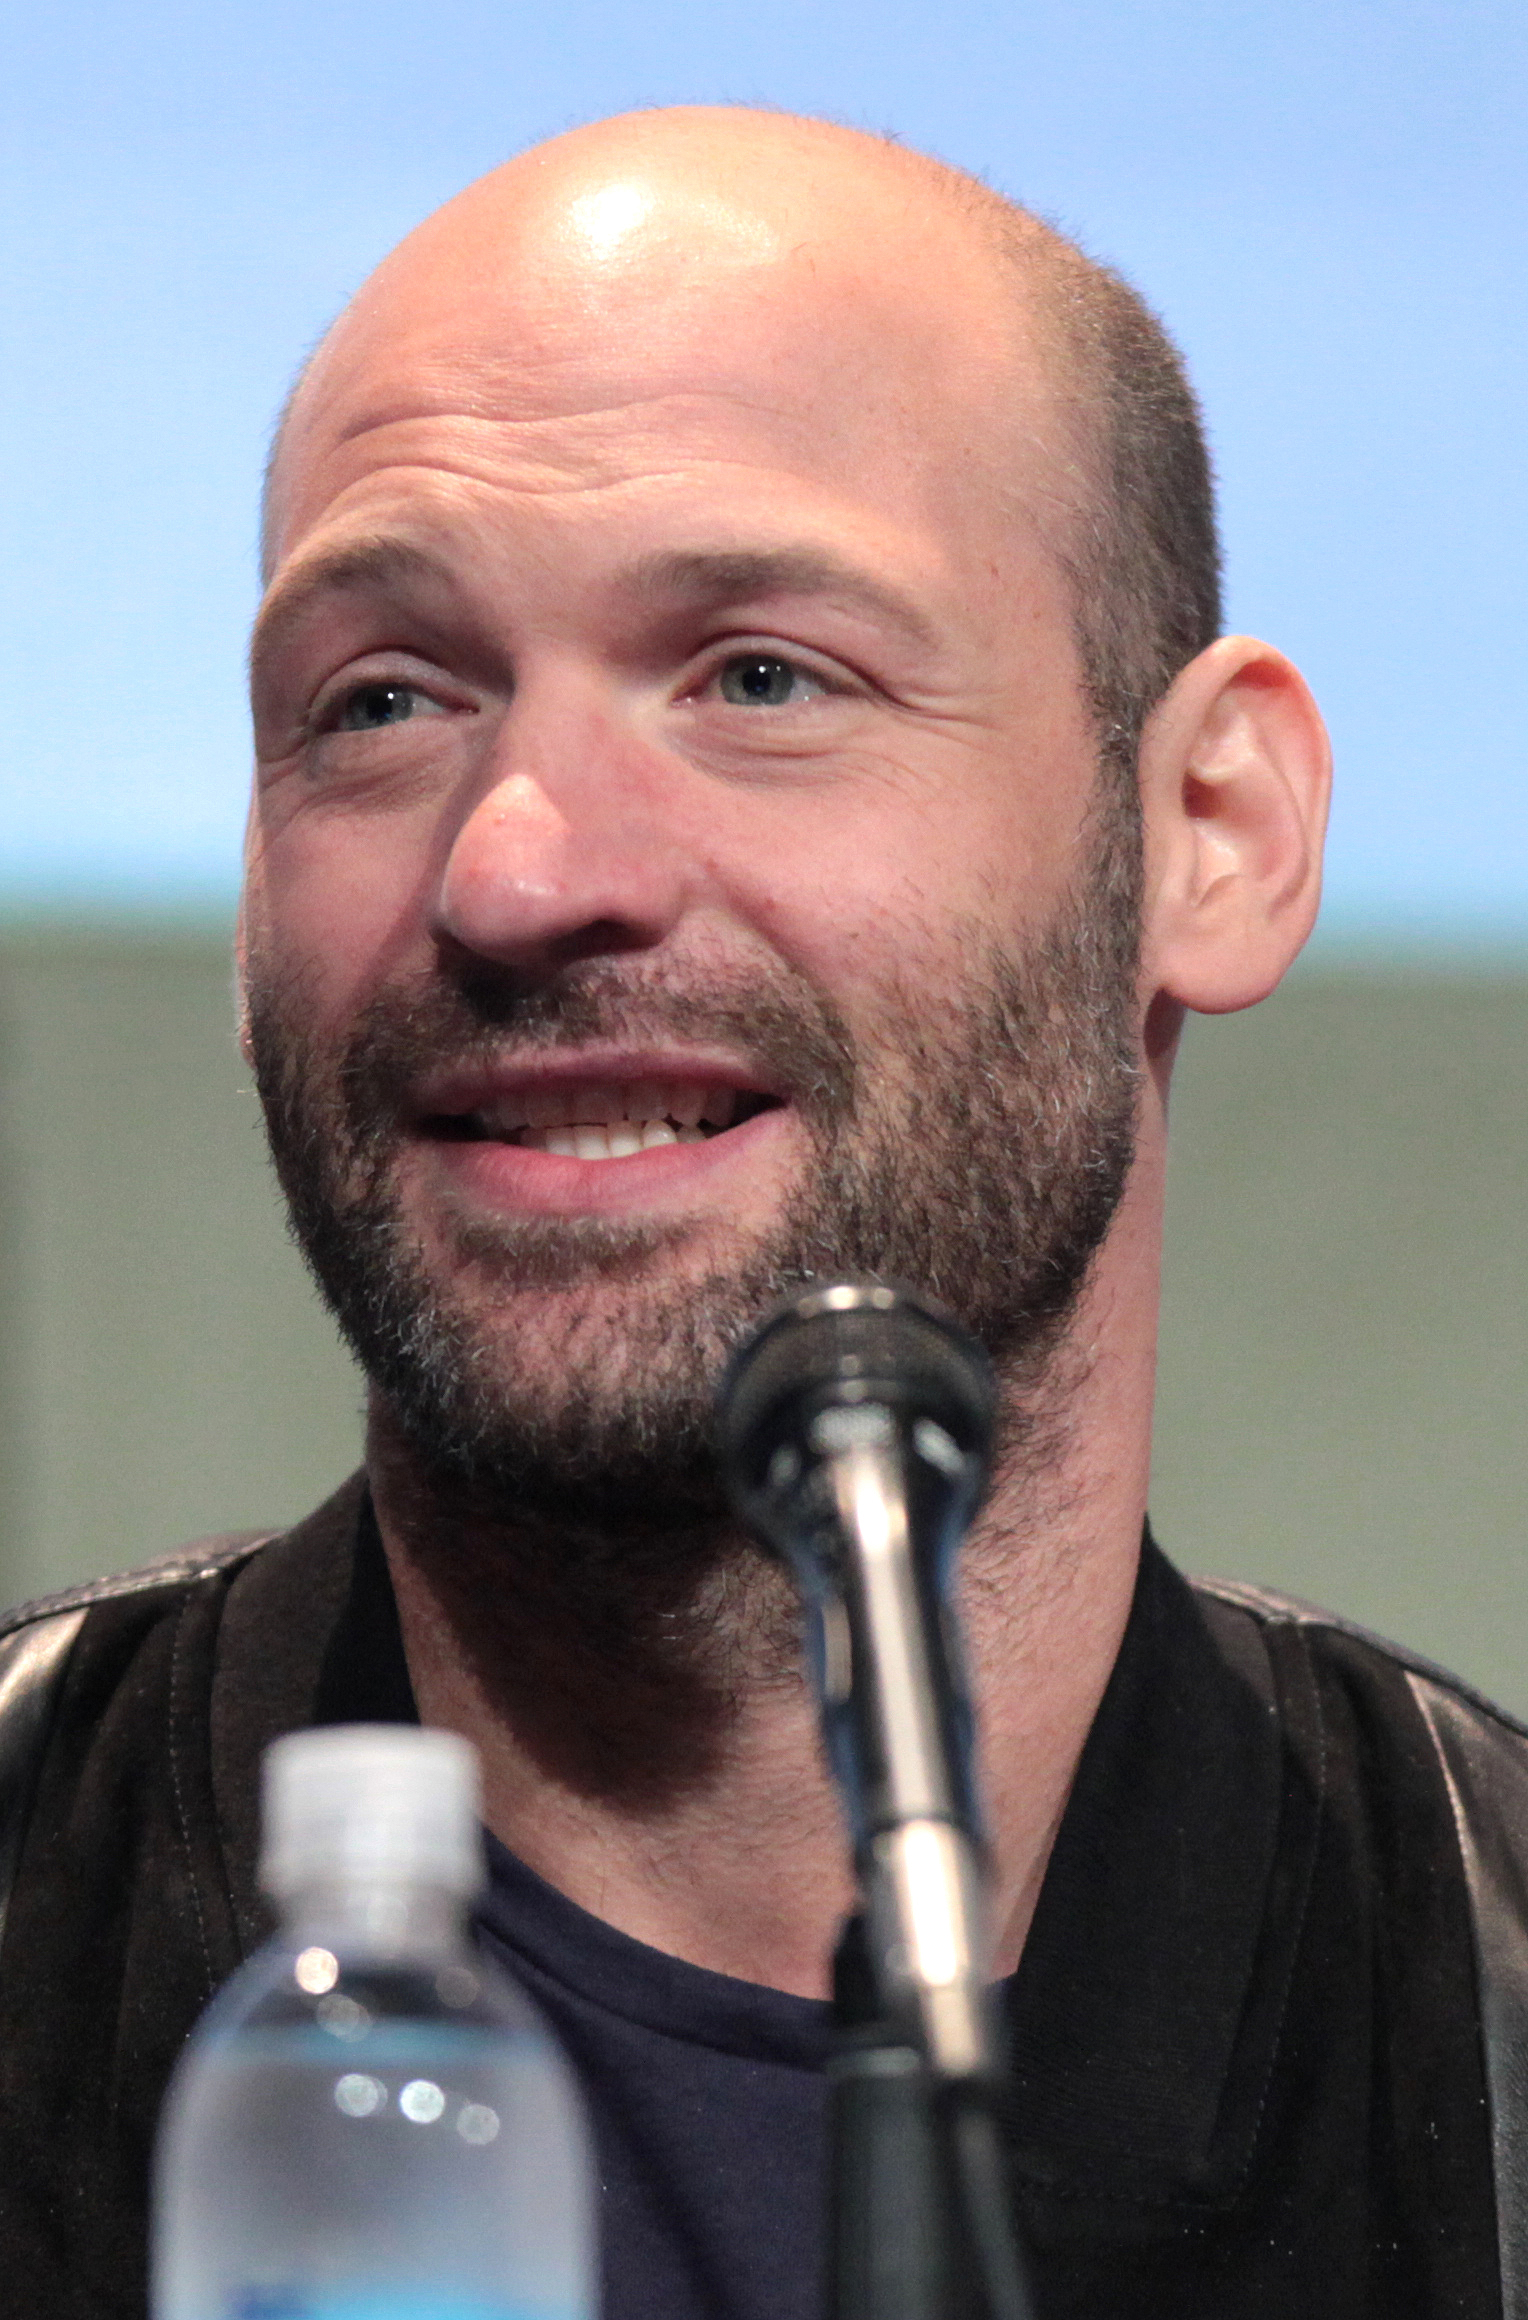 The 42-year old son of father (?) and mother(?) Corey Stoll in 2018 photo. Corey Stoll earned a  million dollar salary - leaving the net worth at 3 million in 2018